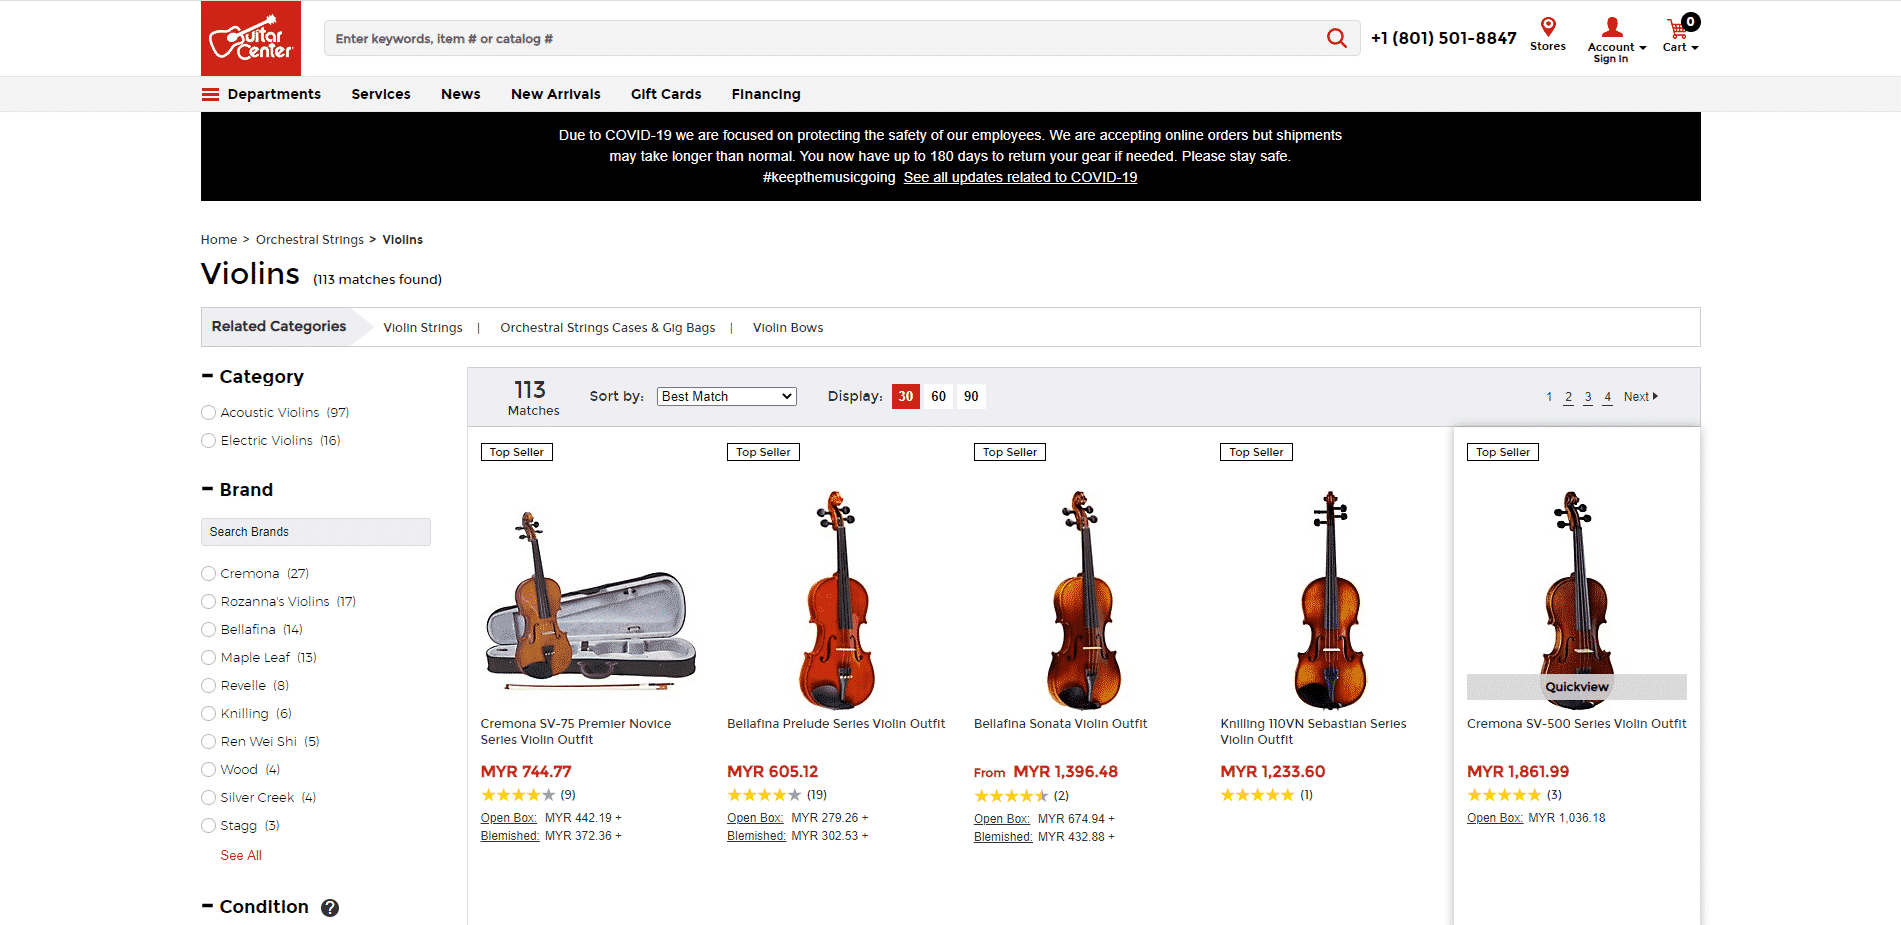 Guitar center buy violin online